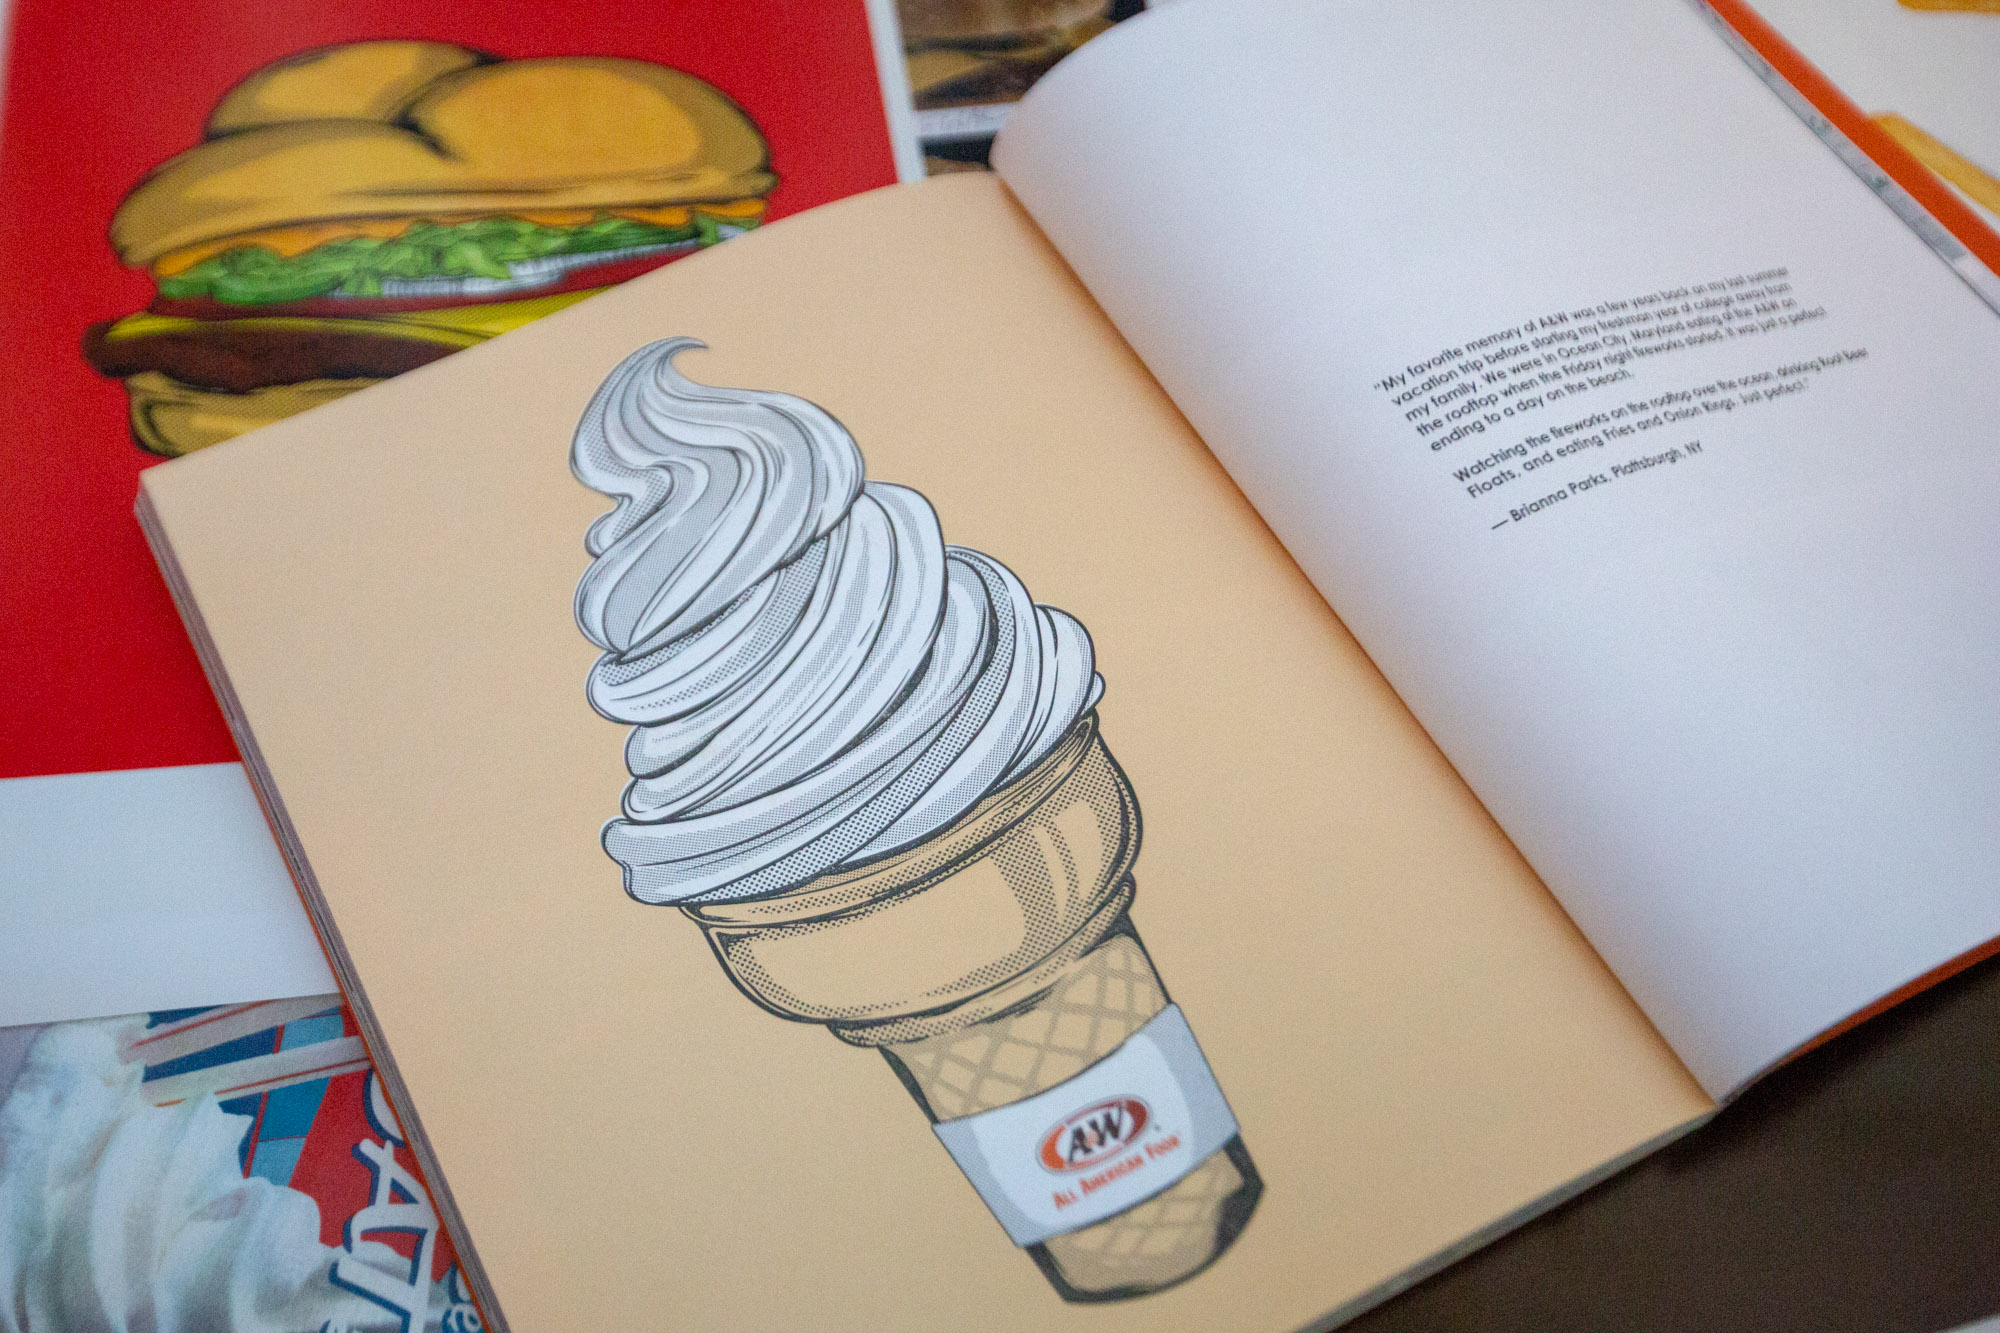 A&W 100th Anniversary Book with drawing of a vanilla soft serve cone on the left page, fan story on the right page.